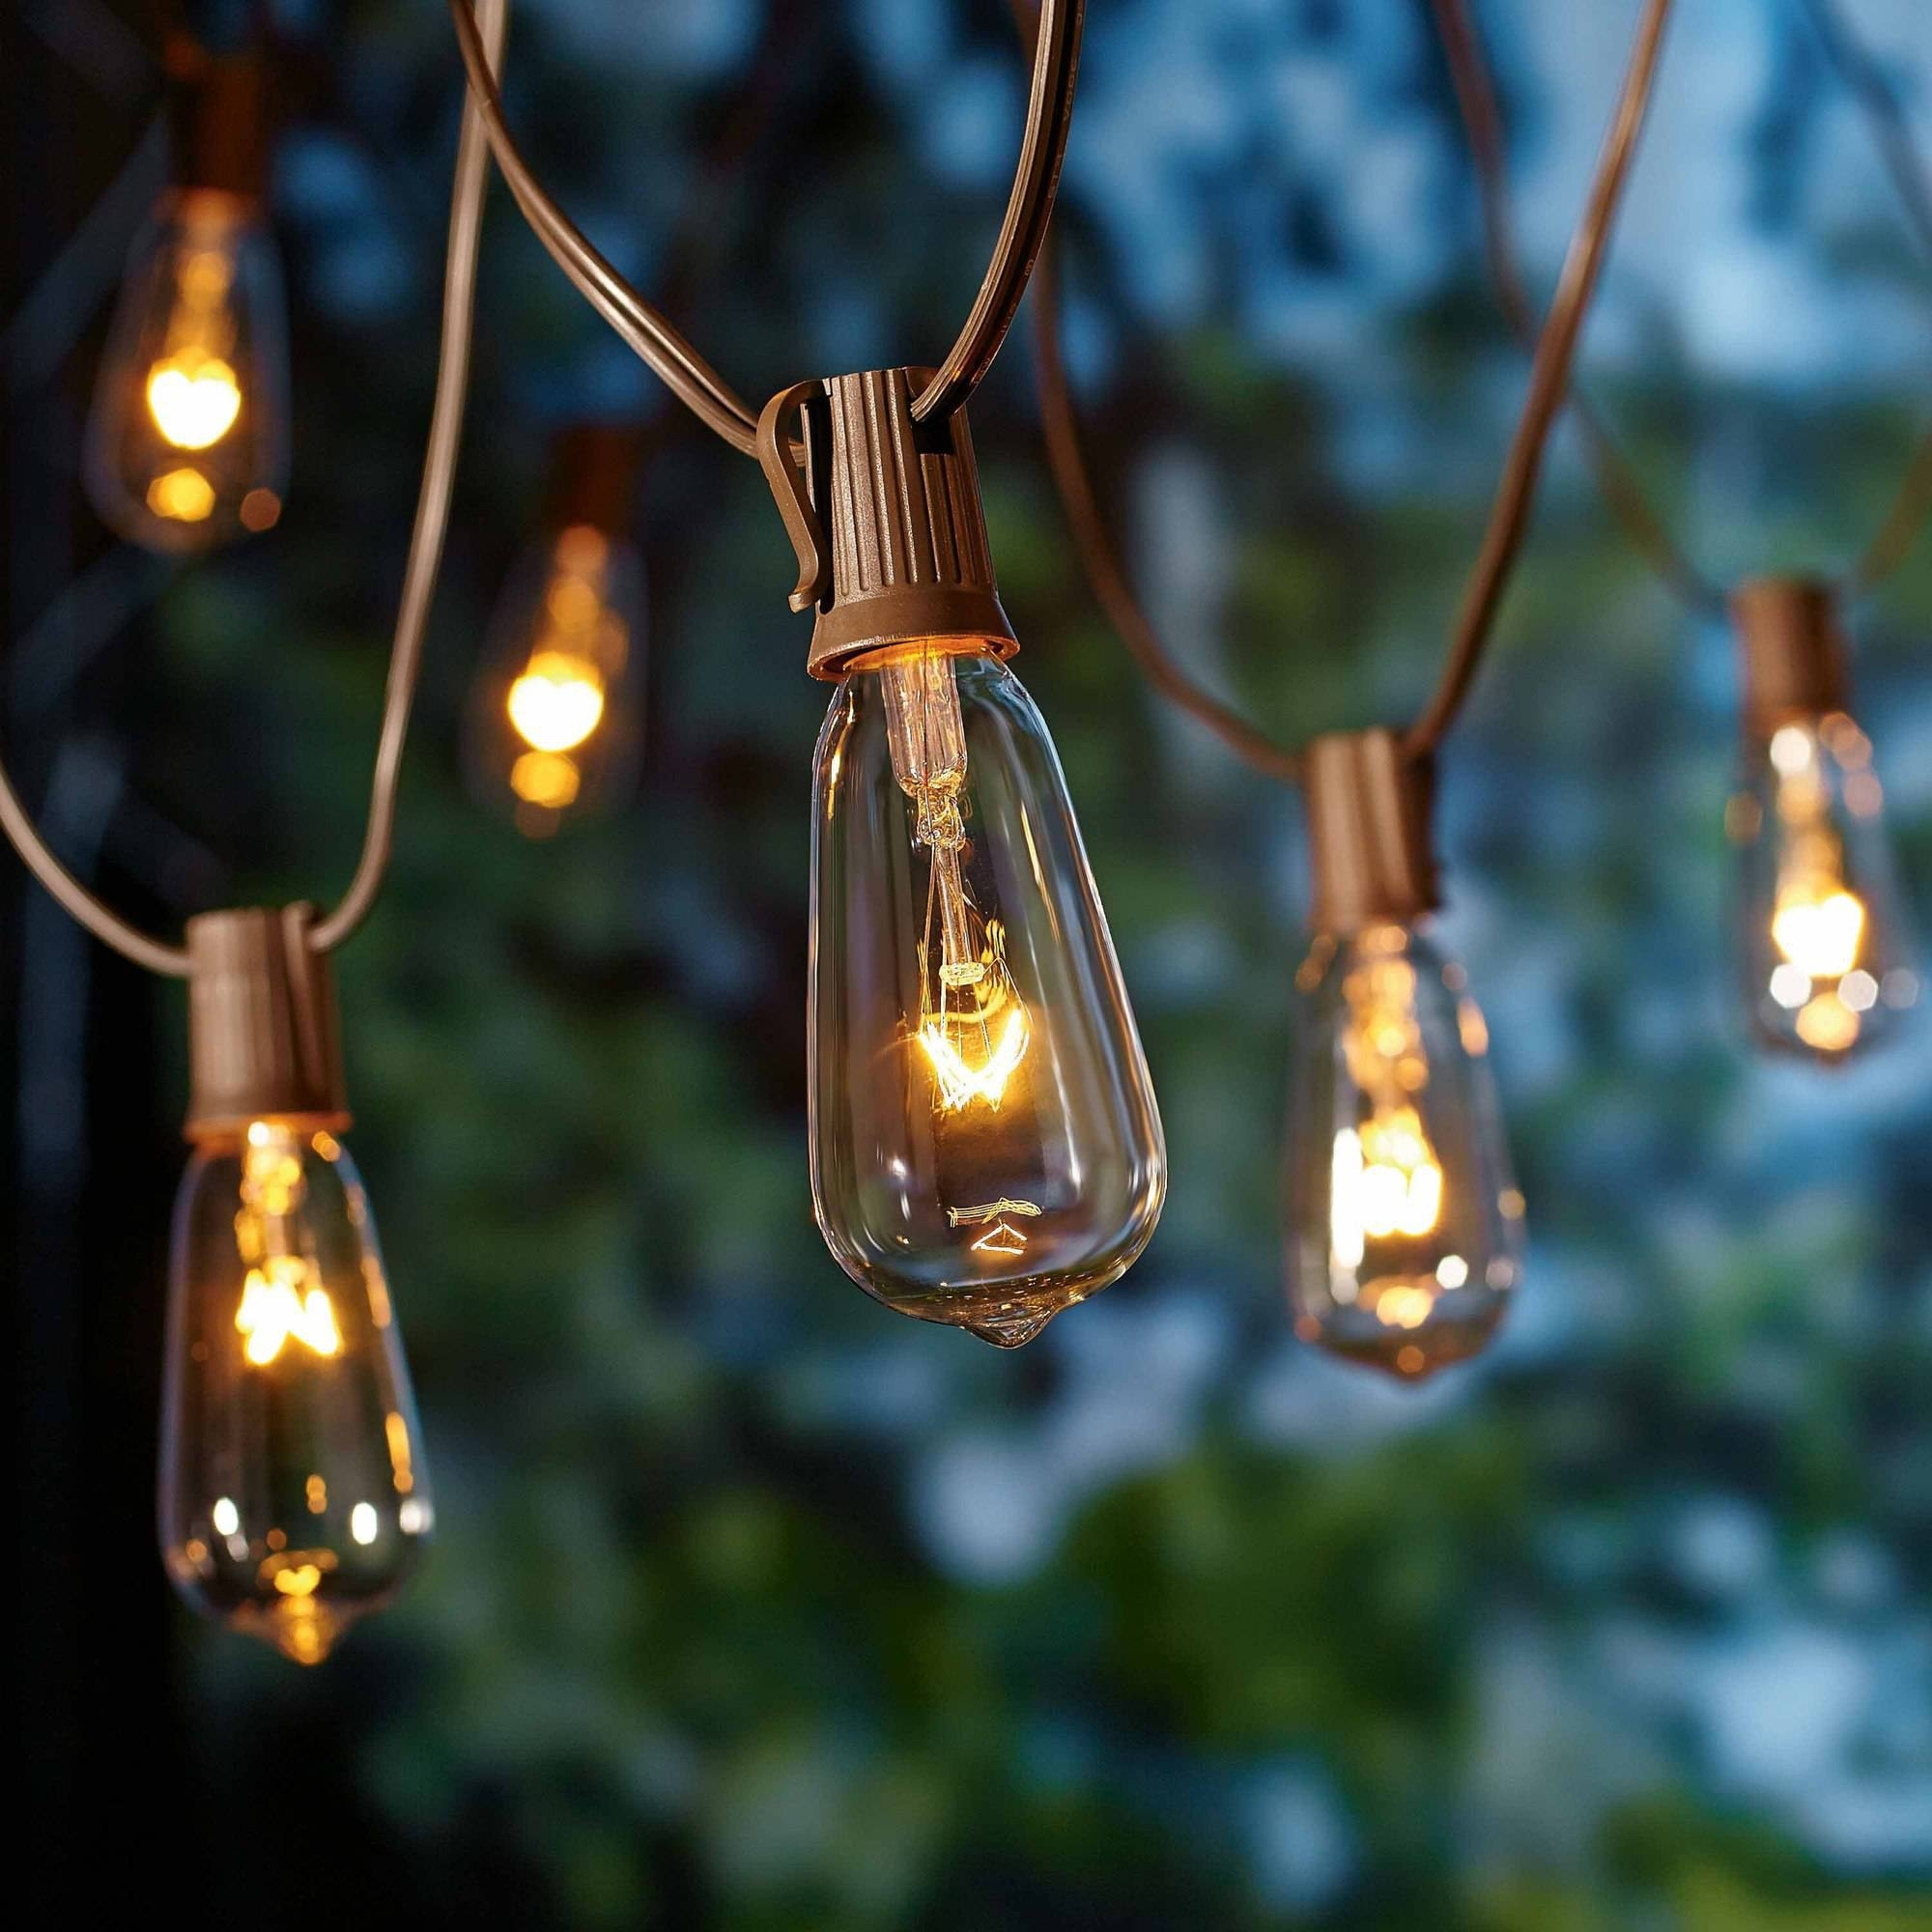 Preferred Better Homes And Gardens Outdoor Glass Edison String Lights, 10 For Outdoor Wall Lighting At Walmart (View 17 of 20)